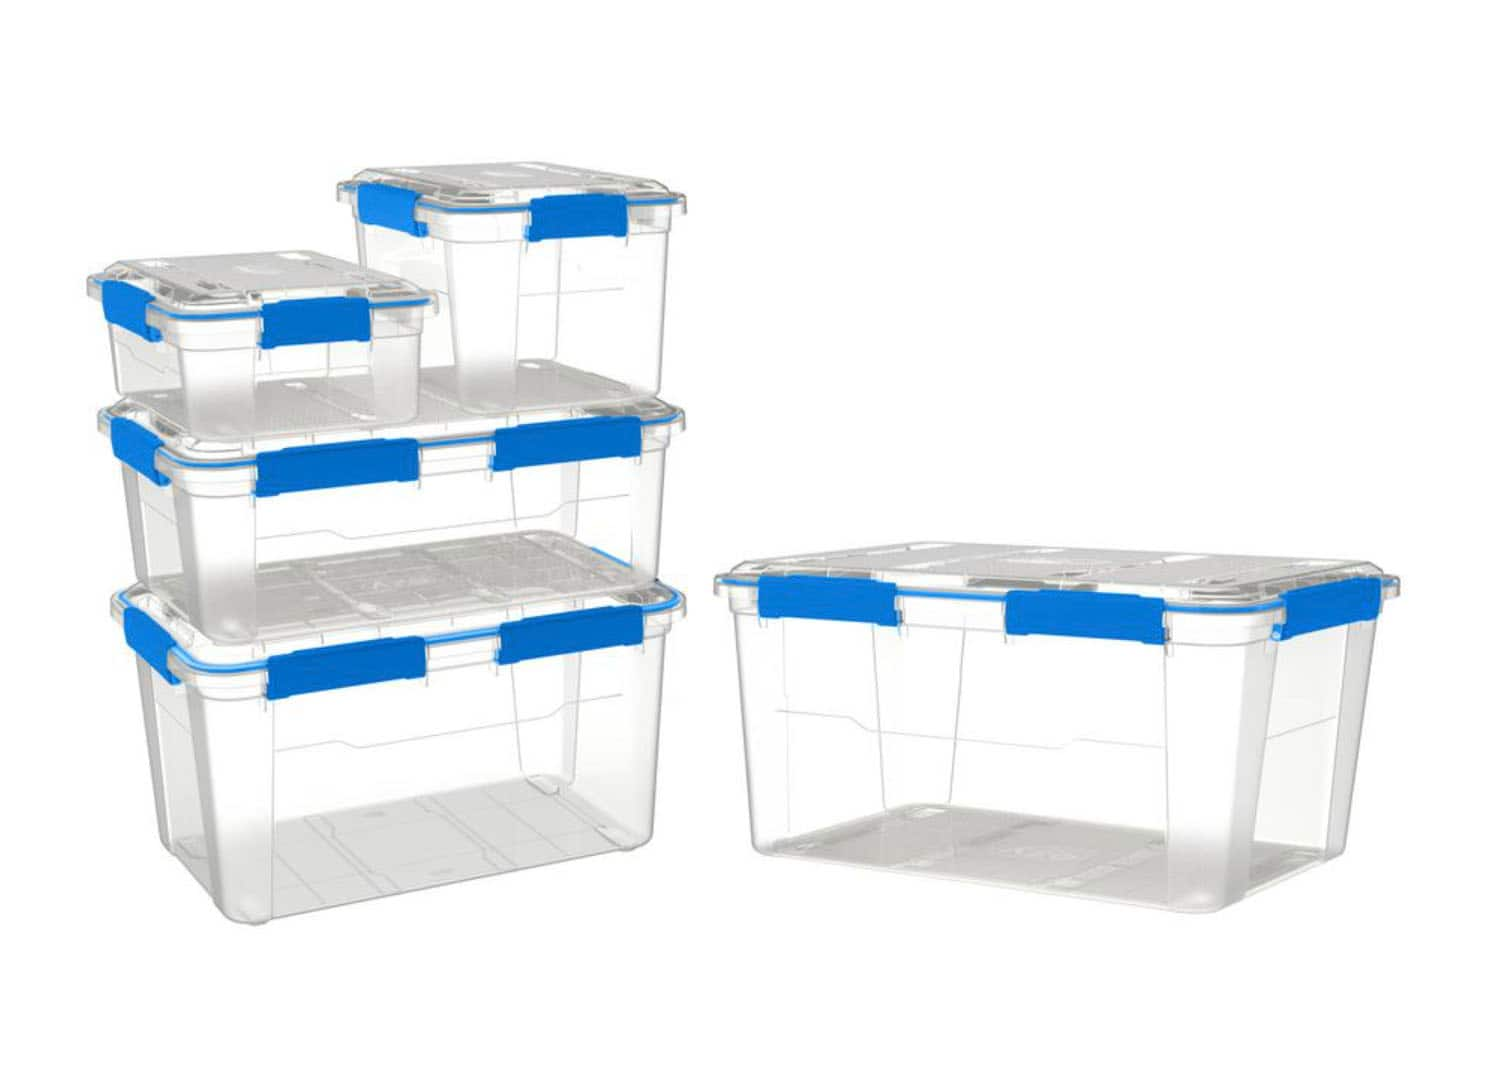 Home Depot: Up to 25% Off Storage Solutions, From $5.98 + Free Curbside Pickup